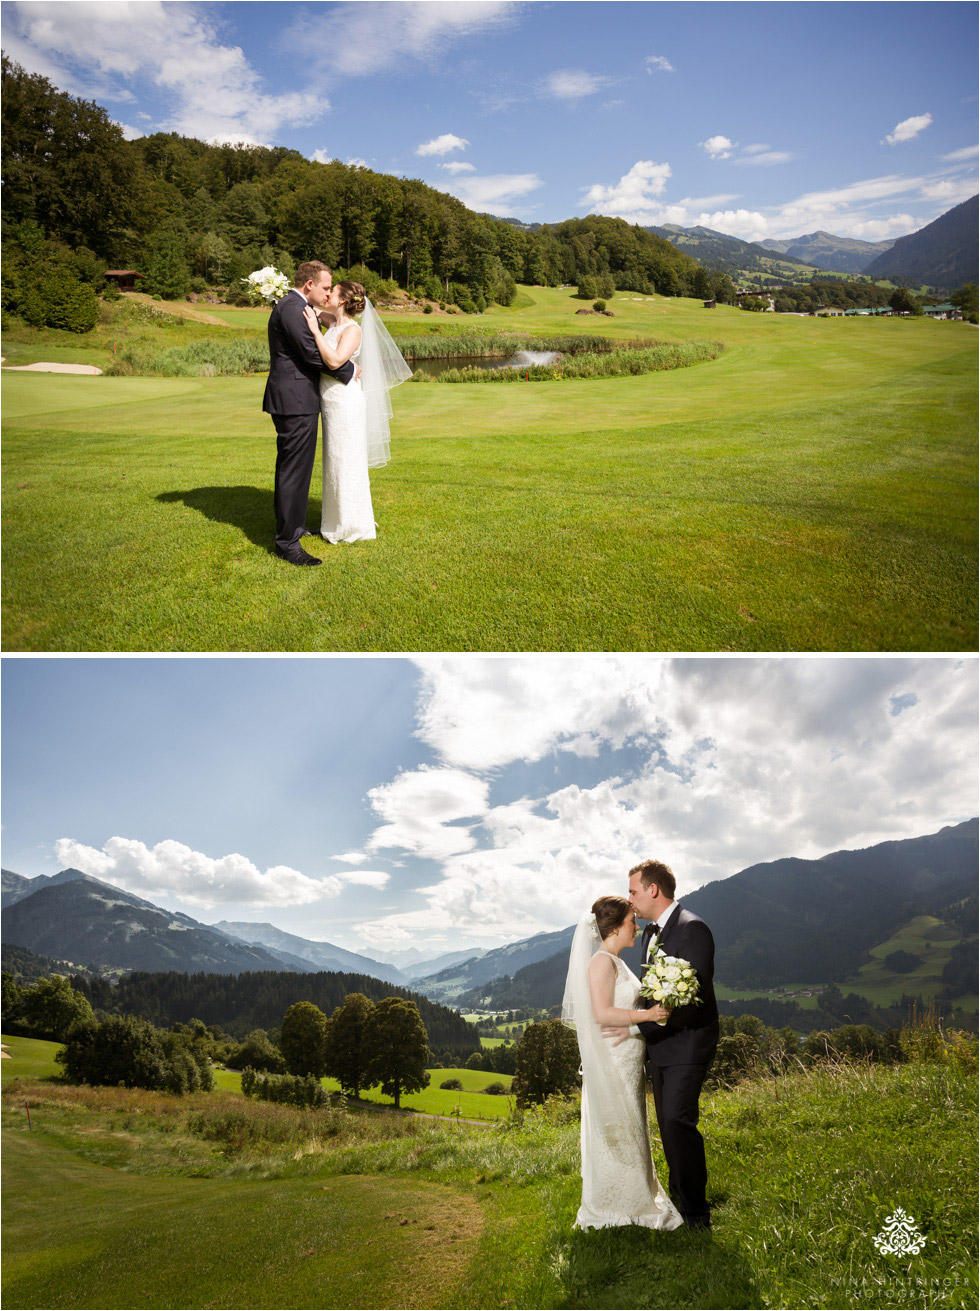 Hochzeitsfotograf Tirol, Hochzeitsfotograf Kitzbühel, Hochzeit Grand Tirolia, Wilder Kaiser, Tyrol Wedding Photographer, Kitzbühel Wedding Photographer, Grand Tirolia, Grand Tirolia Wedding Photographer - Blog of Nina Hintringer Photography - Wedding Photography, Wedding Reportage and Destination Weddings